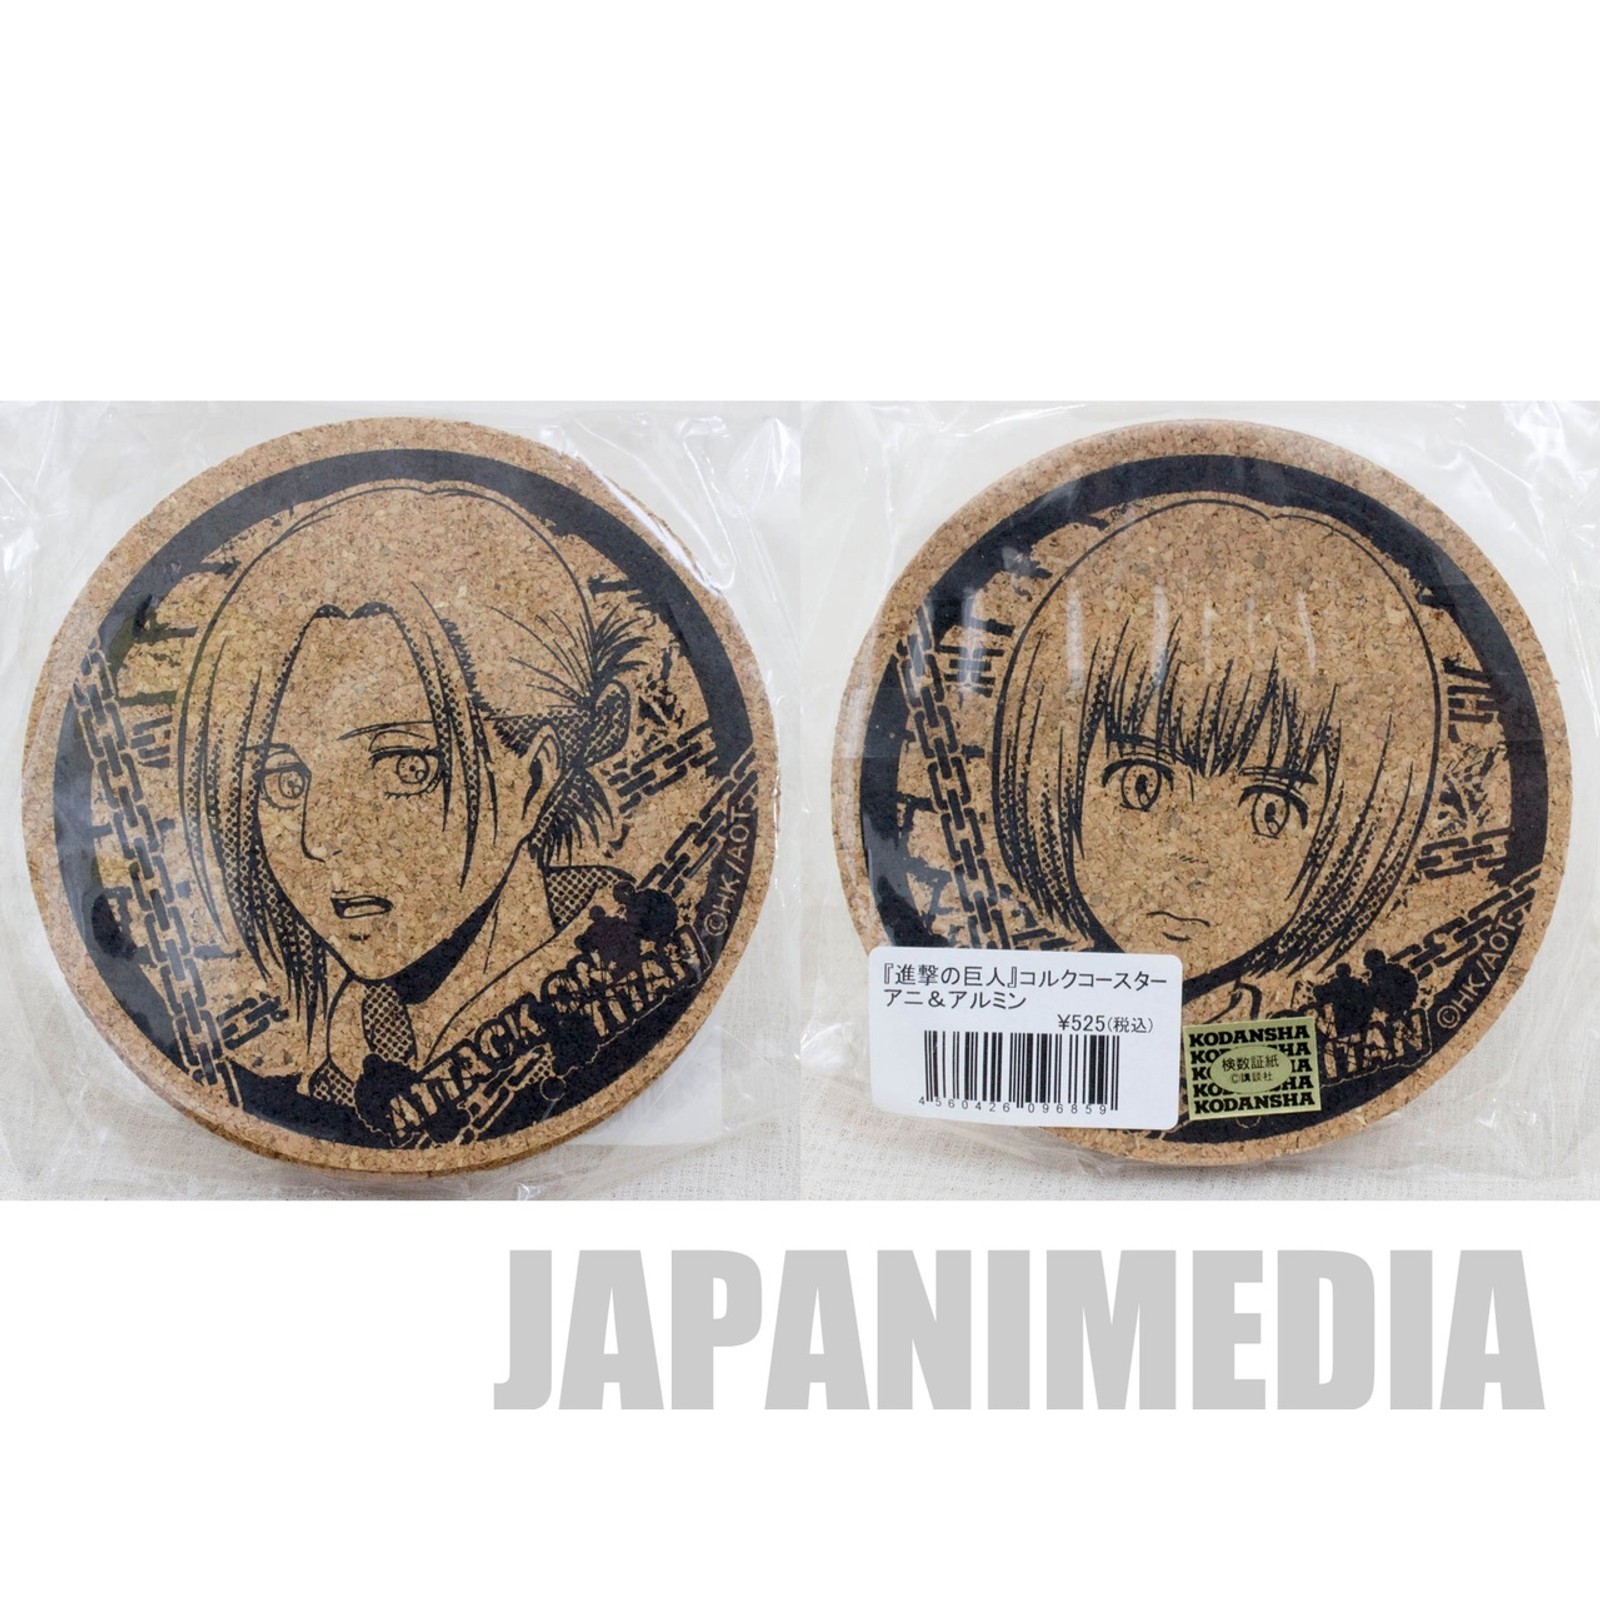 Attack on Titan Cork Coaster 2pc set Armin Harlert & Annie Leonhart JAPAN ANIME